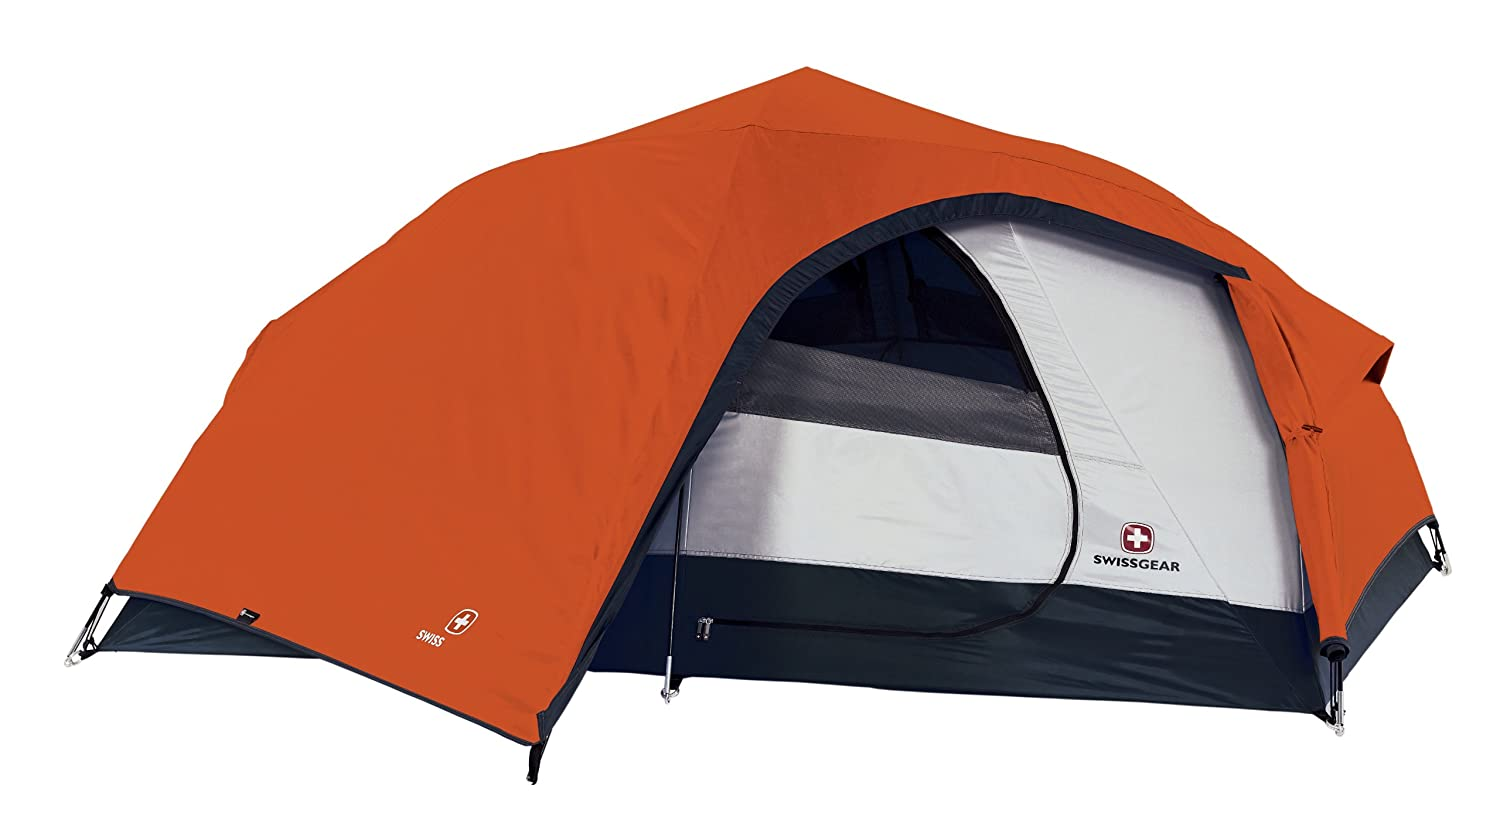 Amazon.com  Swiss Gear Niesen Hiker Tent (Orange/Grey)  Sports u0026 Outdoors  sc 1 st  Amazon.com & Amazon.com : Swiss Gear Niesen Hiker Tent (Orange/Grey) : Sports ...